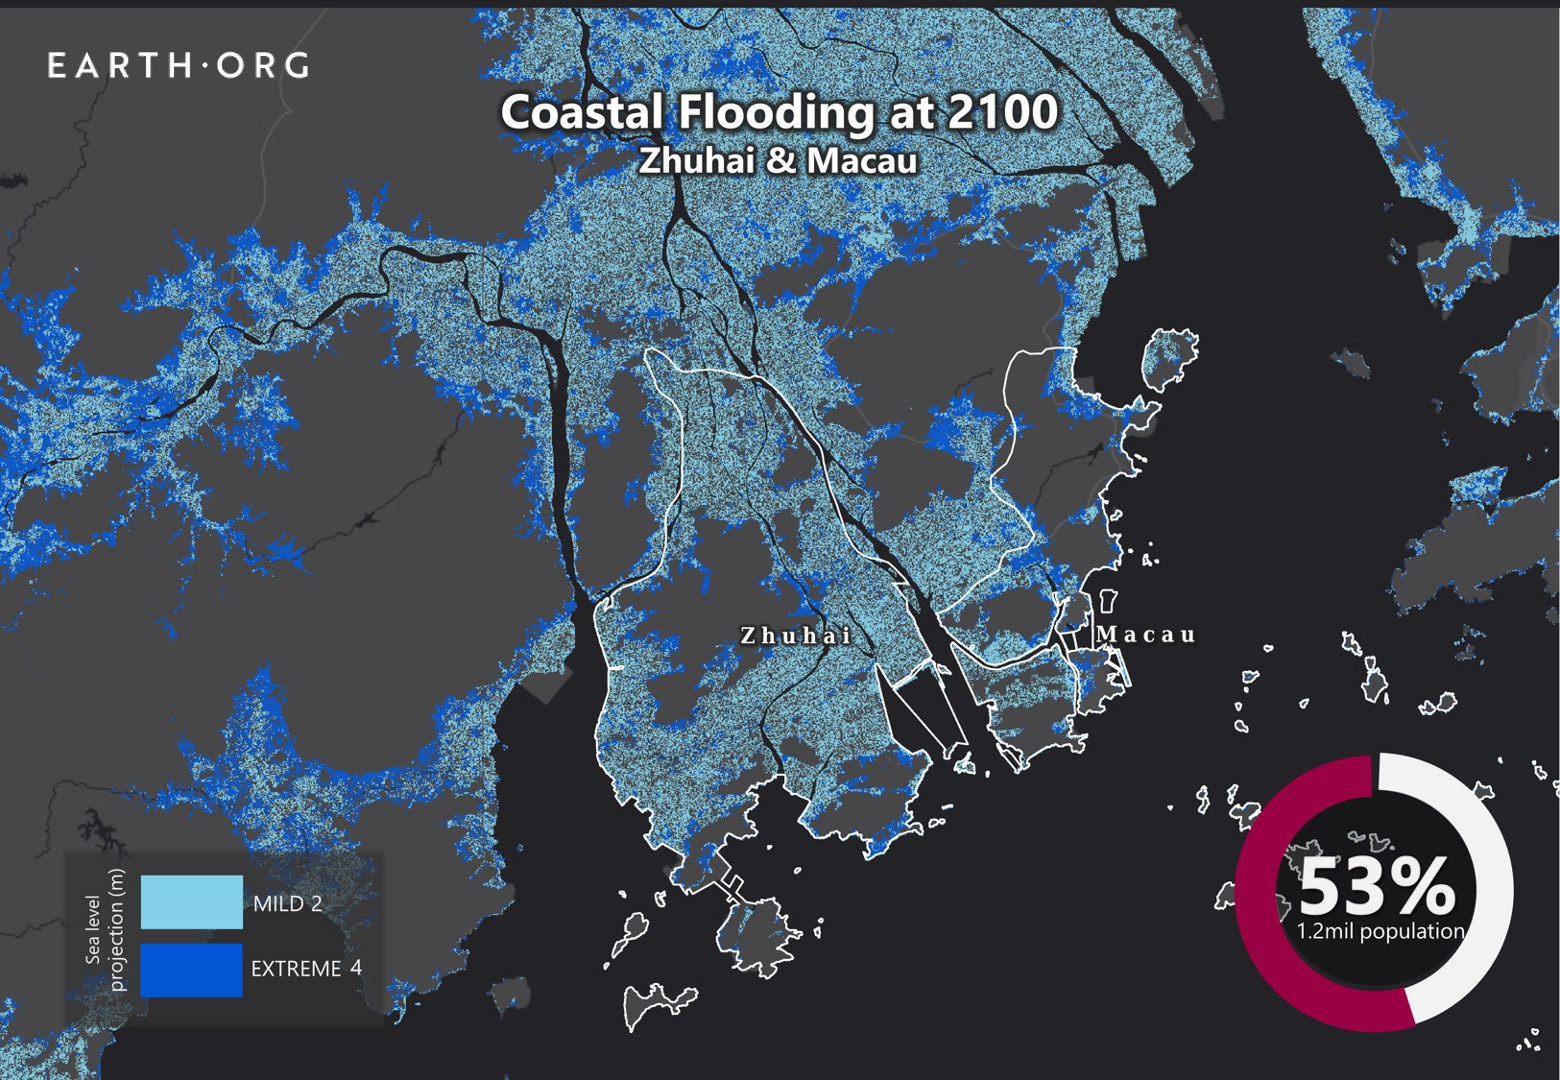 sea level rise by 2100 zhuhai & macau